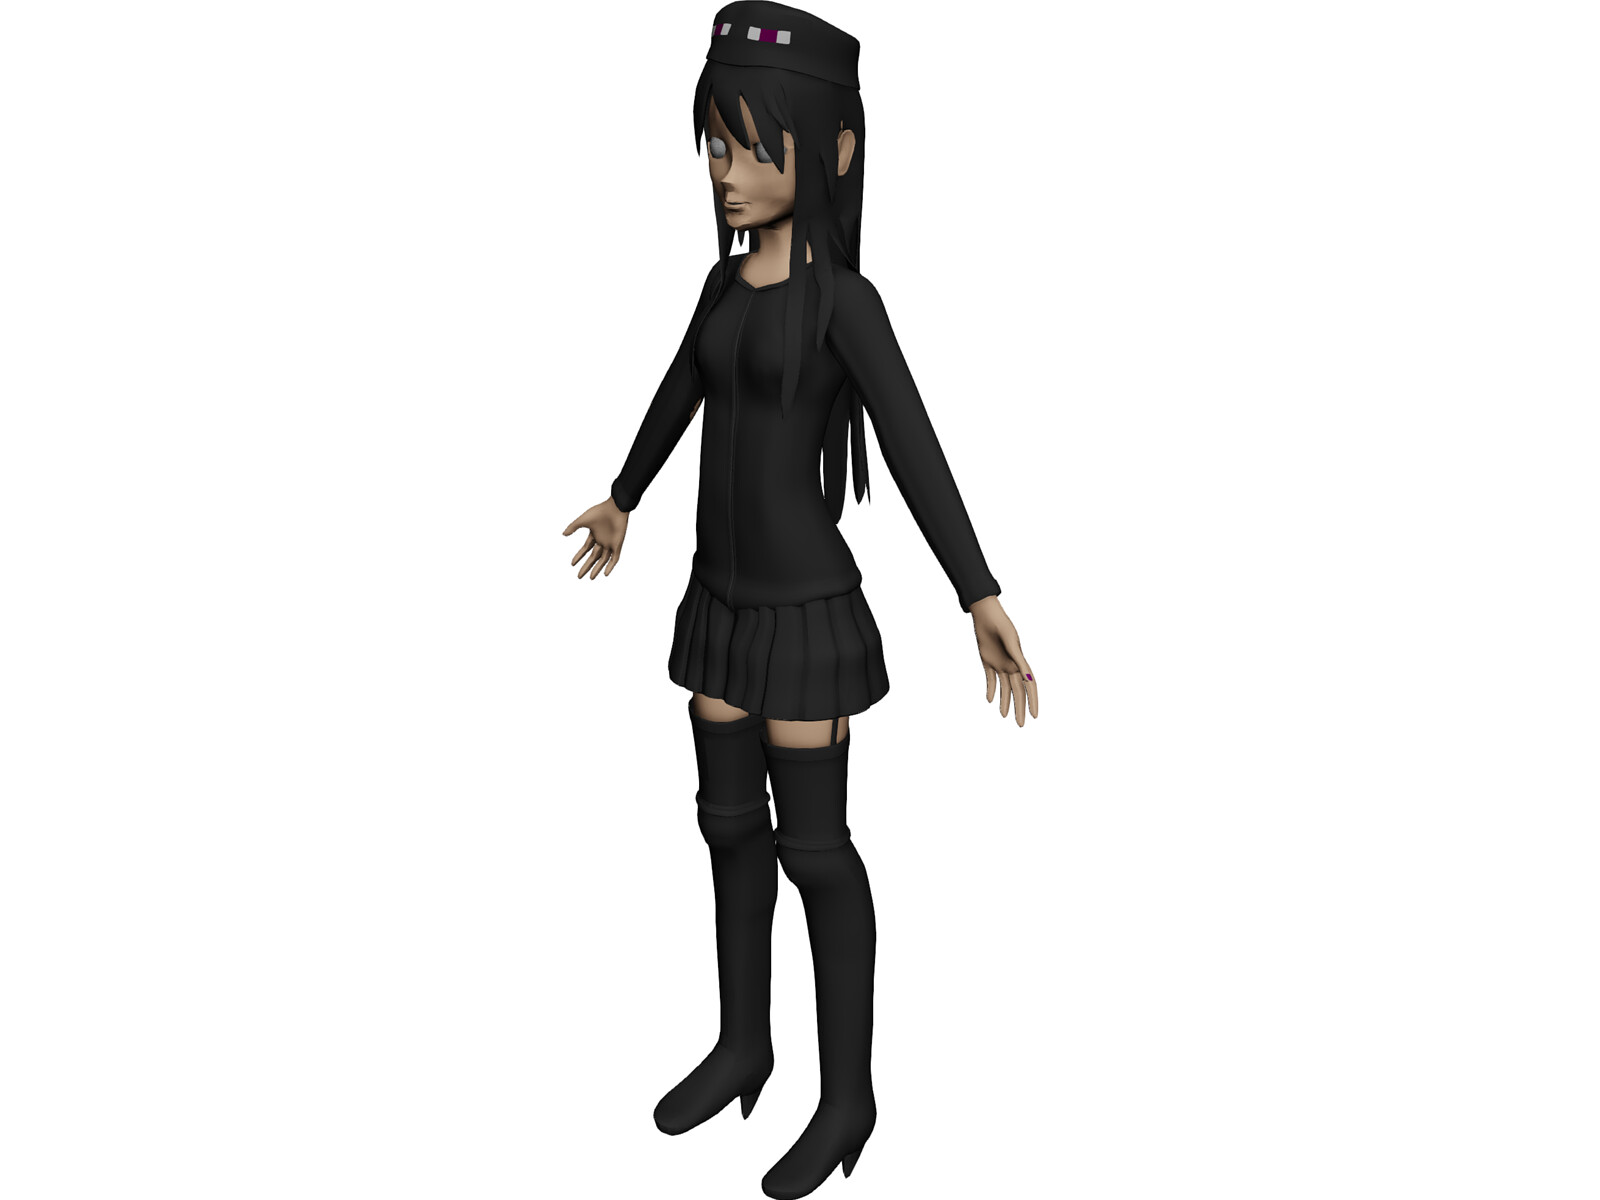 Andr the EnderGirl 3D Model